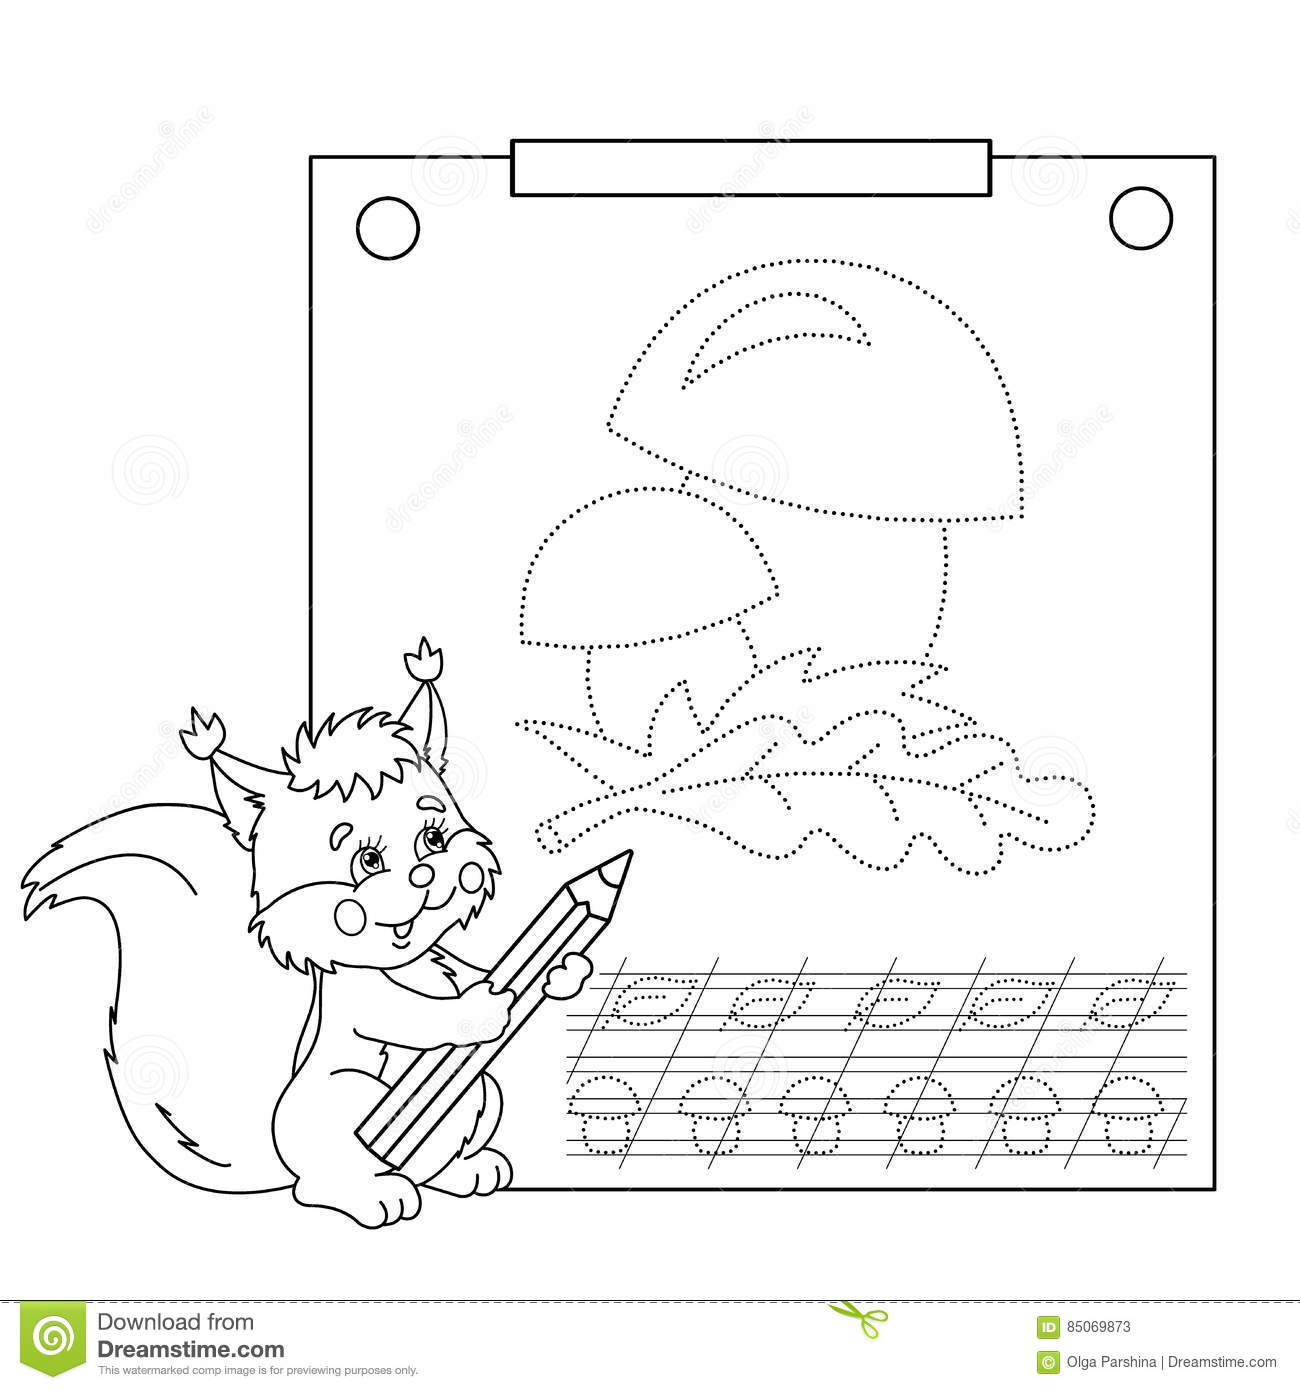 Connect The Dots Picture And Coloring Page. Tracing Worksheet ...